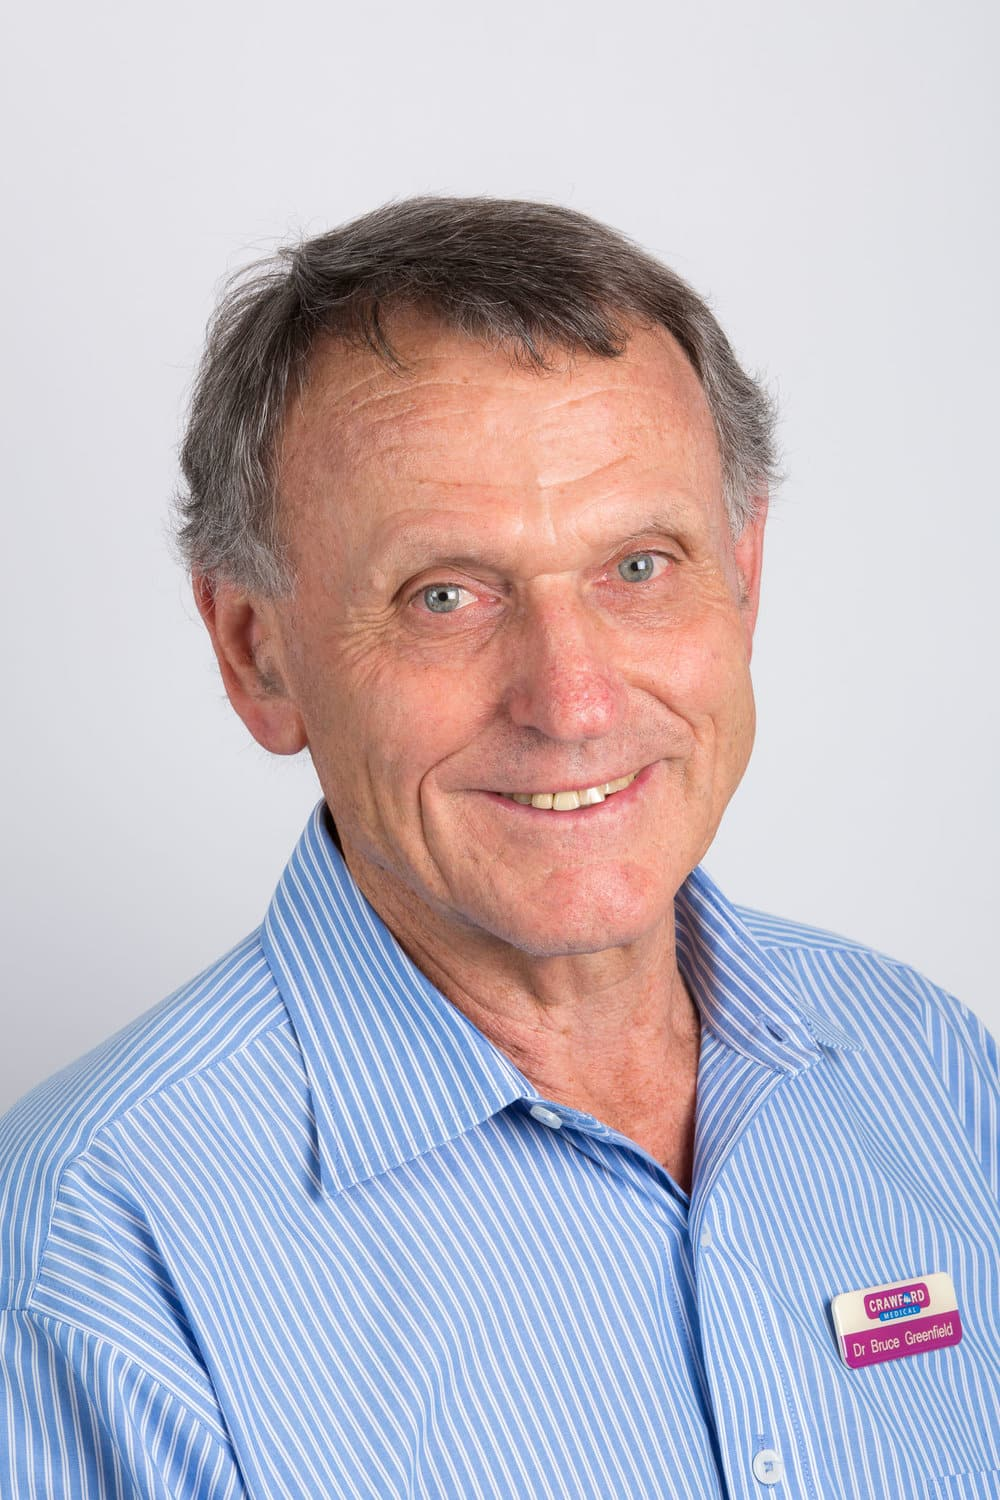 Dr Bruce Greenfield, Auckland GP